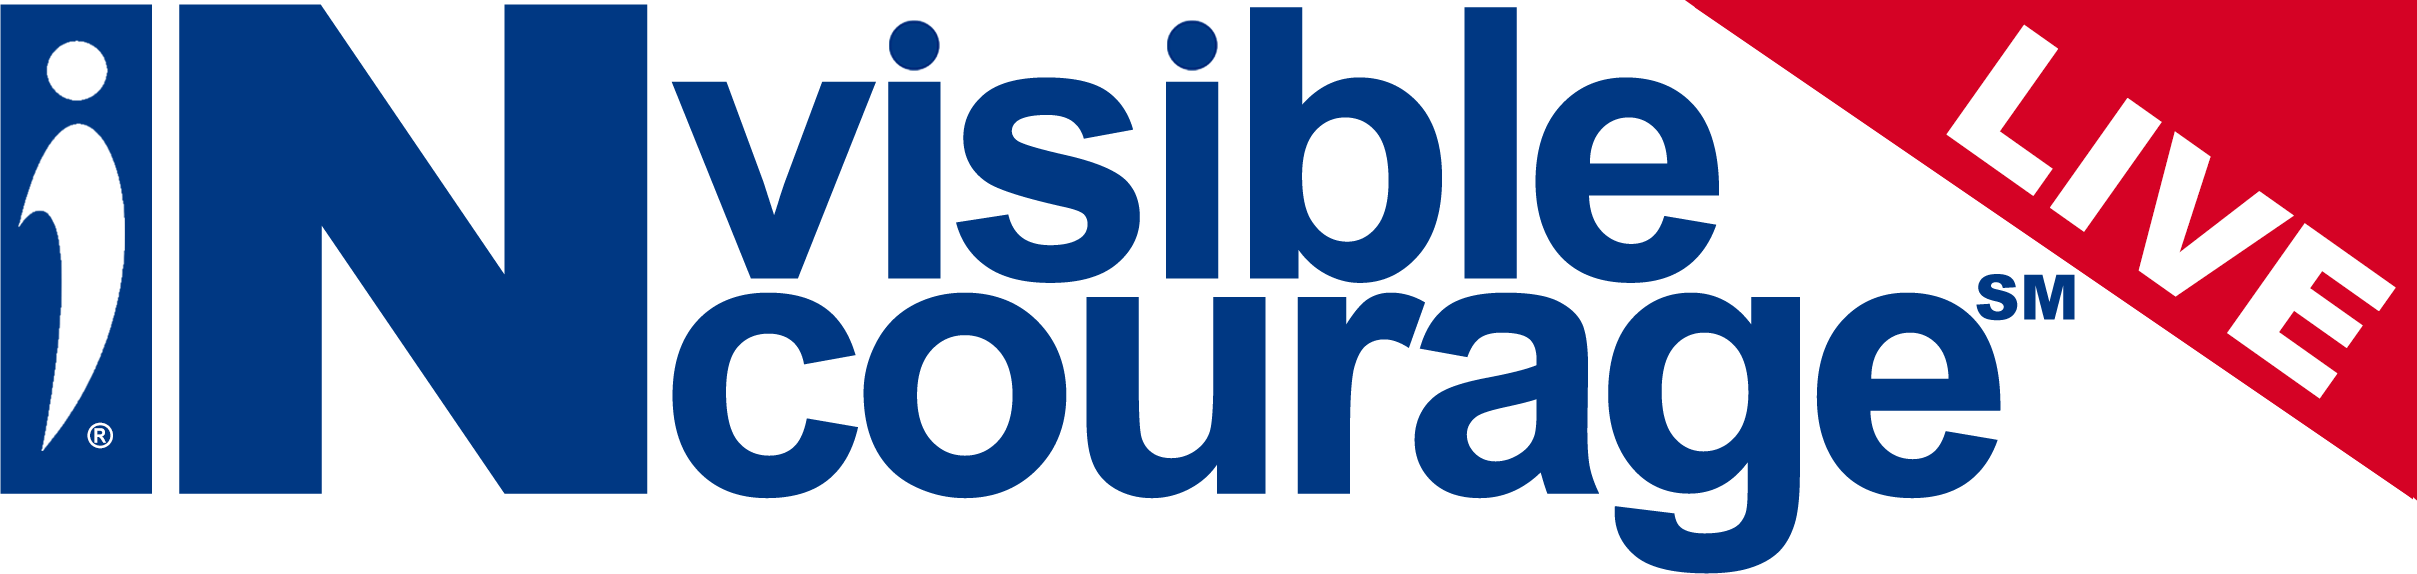 National Disability ID Logo - Invisible Disabilities Association